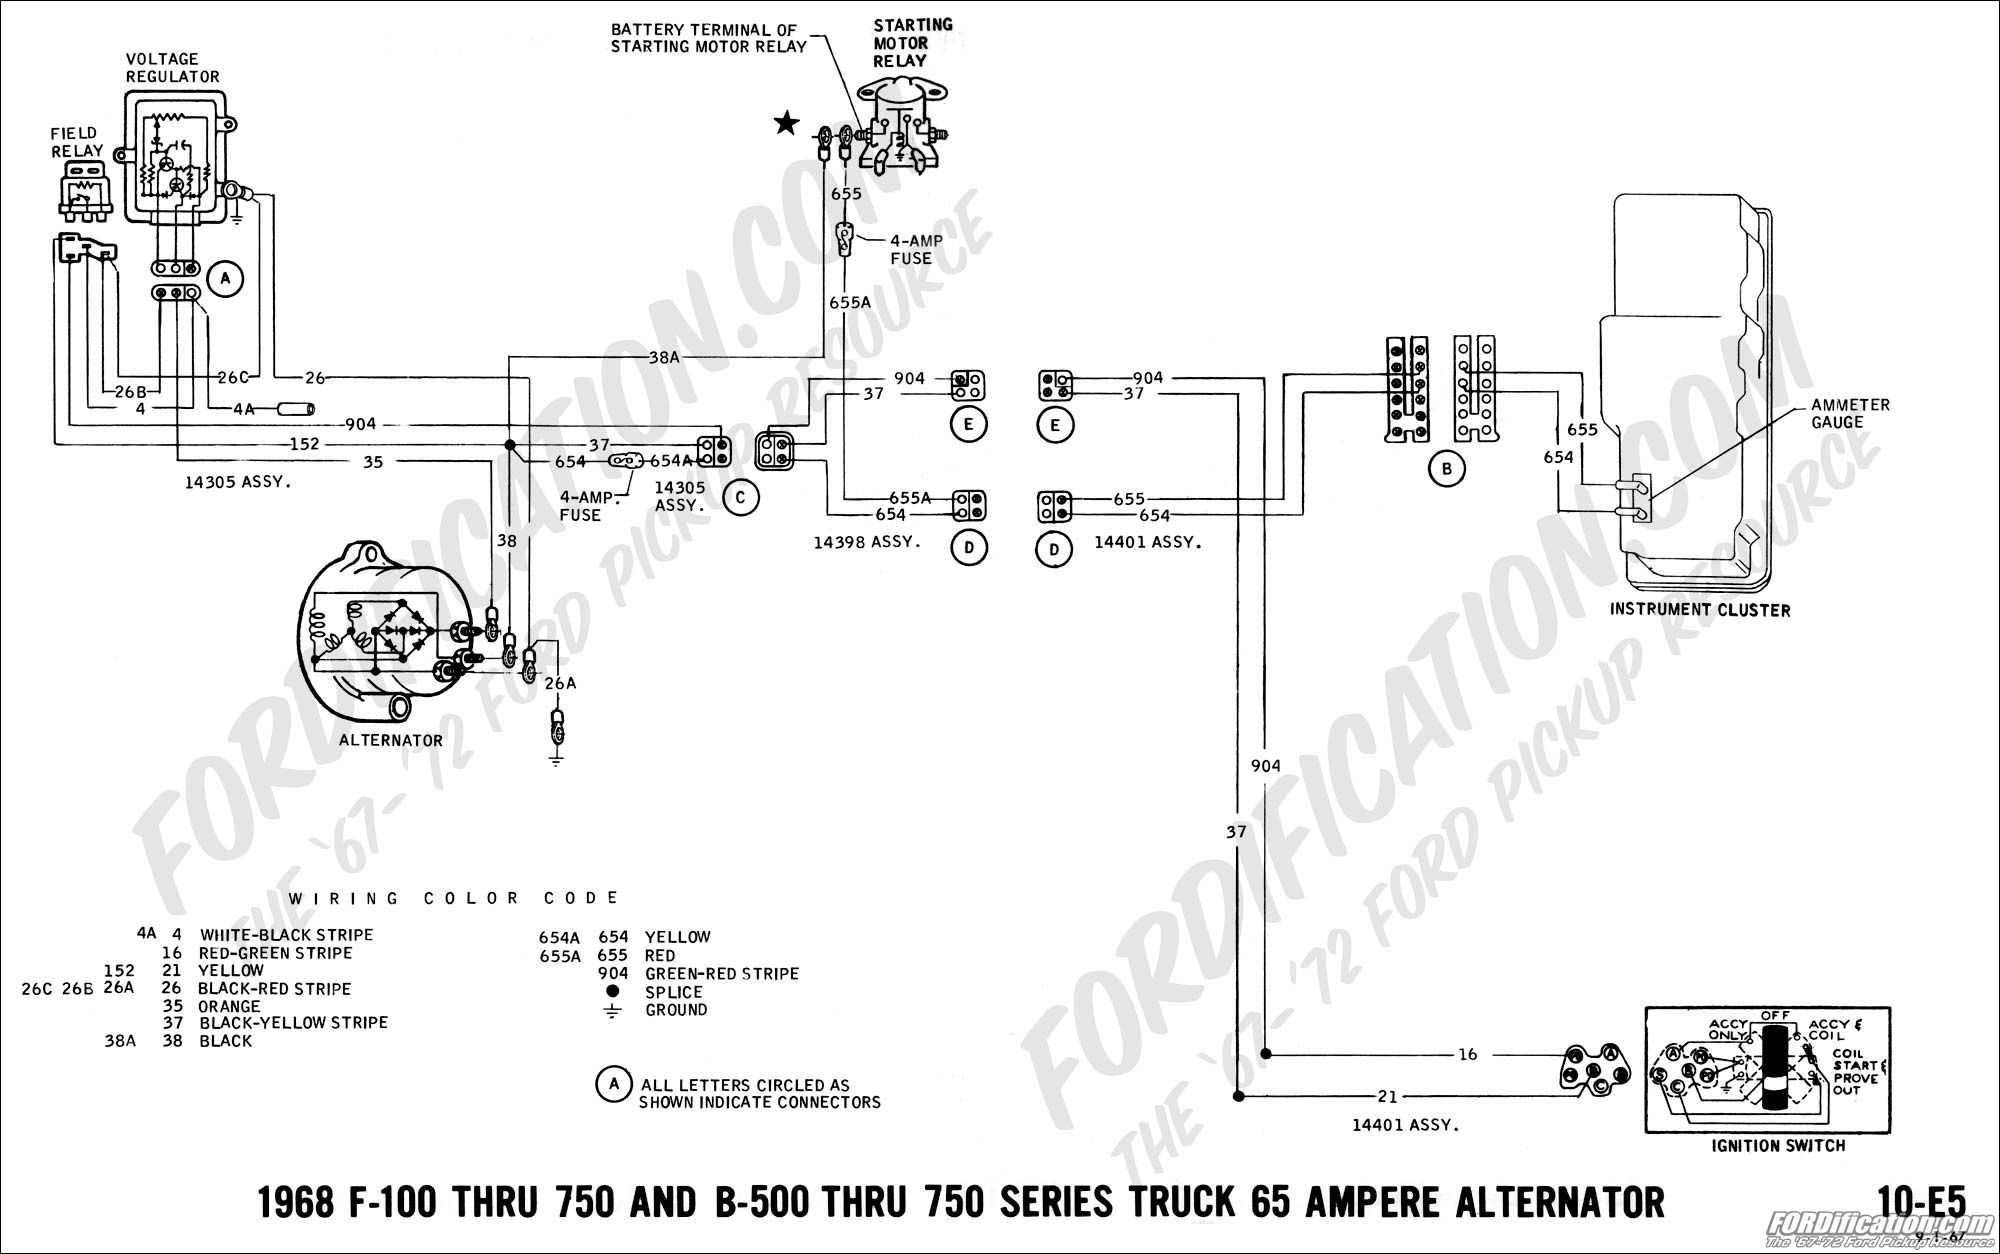 1965 ford alternator wiring wiring diagram today 1965 ford alternator wiring diagram 1965 ford alternator wiring [ 2000 x 1254 Pixel ]